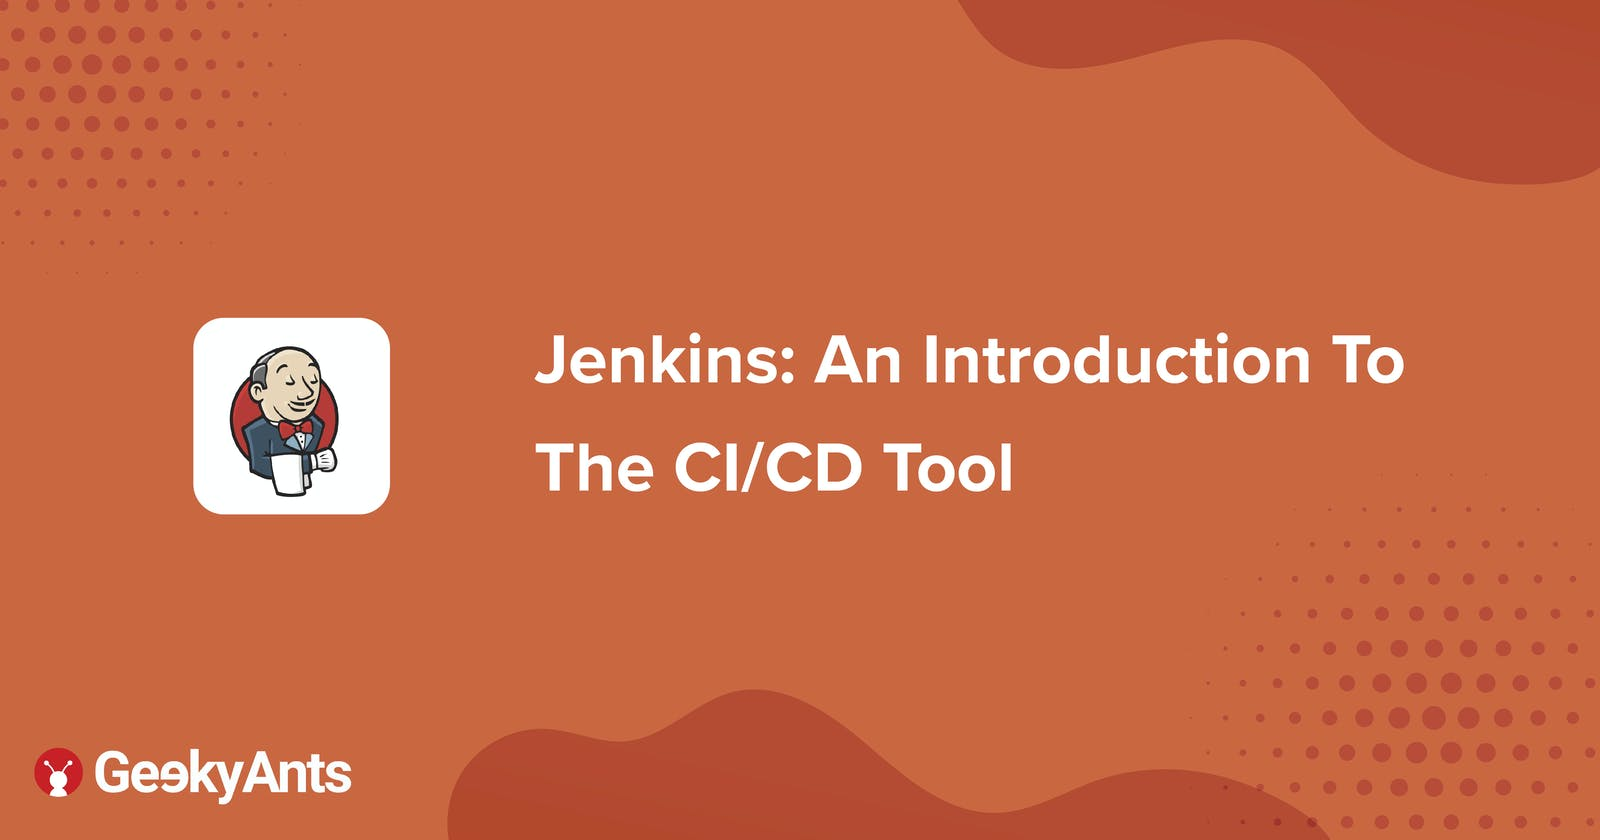 Jenkins: An Introduction To The CI/CD Tool